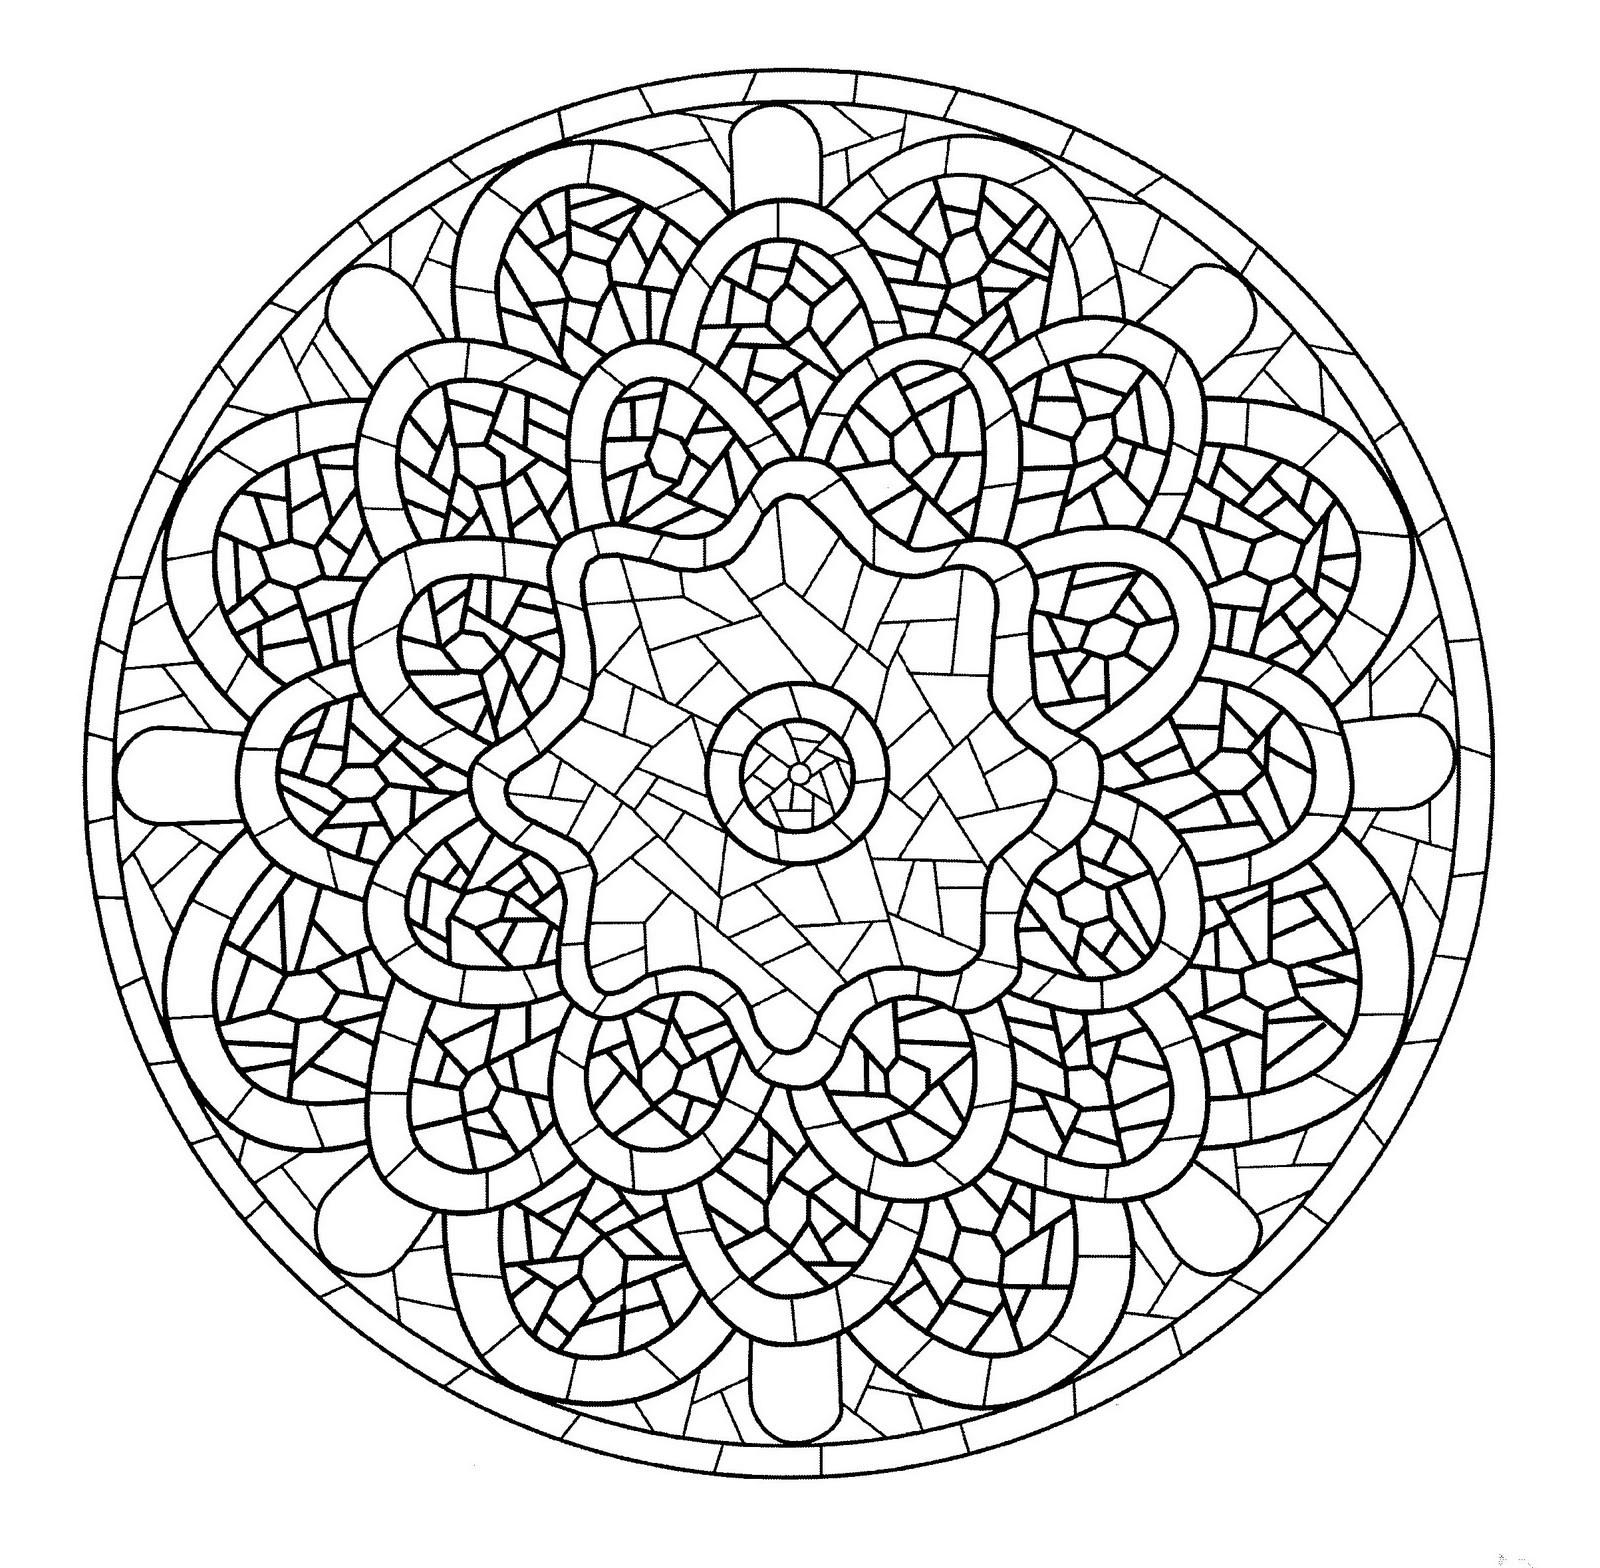 mandala a imprimer 13 coloriage mandalas coloriages pour enfants page 3. Black Bedroom Furniture Sets. Home Design Ideas